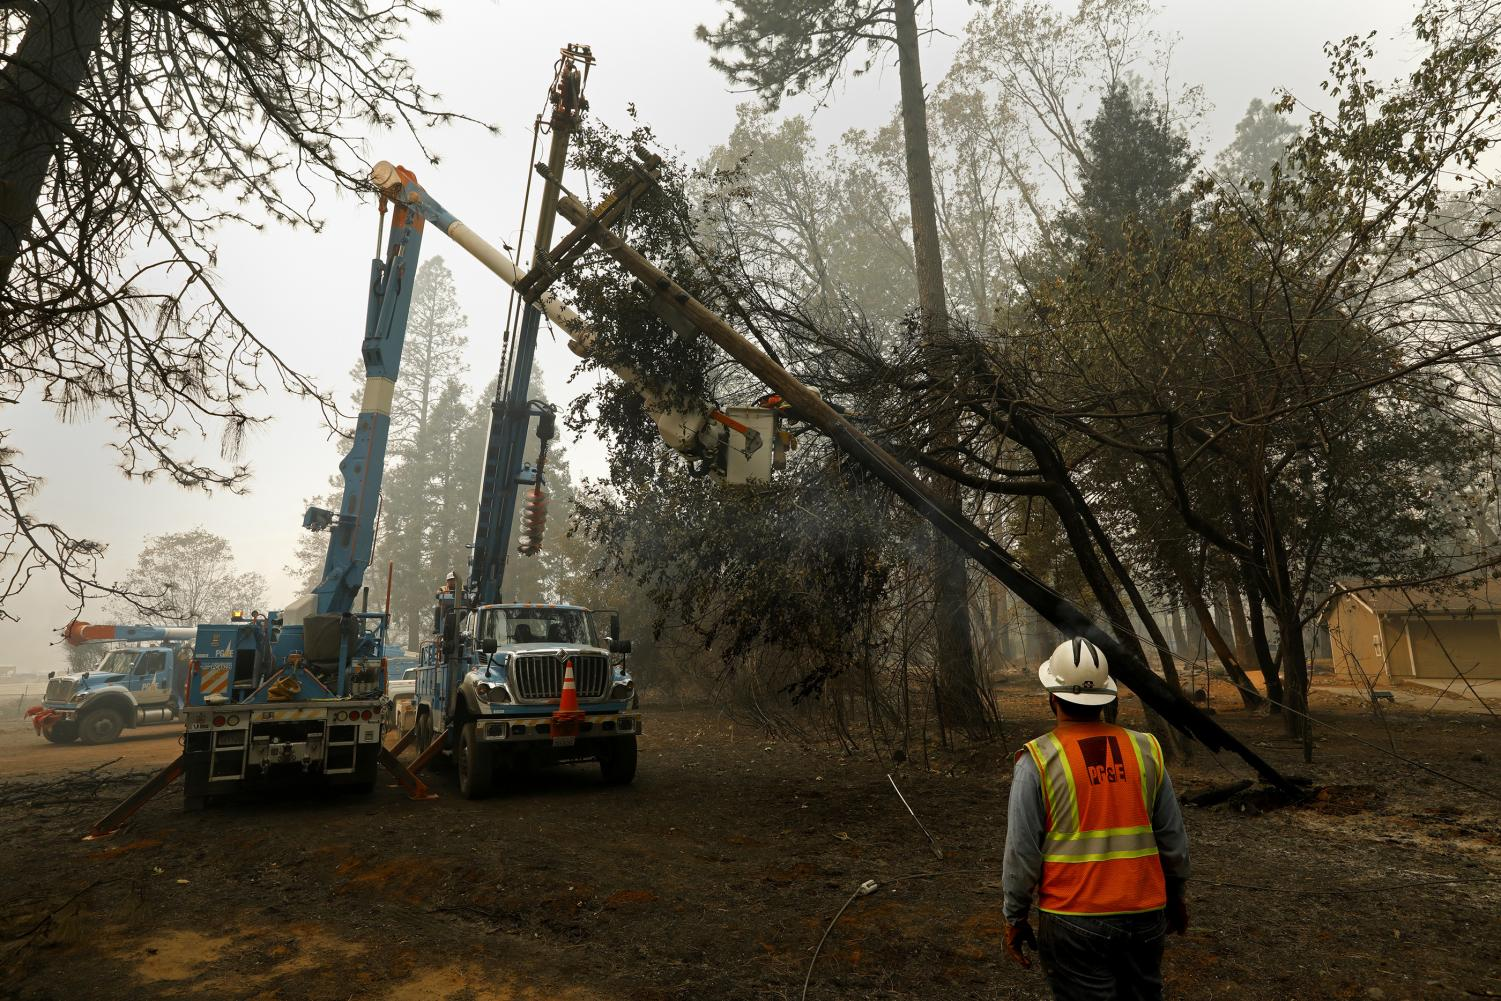 Utility workers cut down trees to avoid downing of power lines during Santa Ana winds